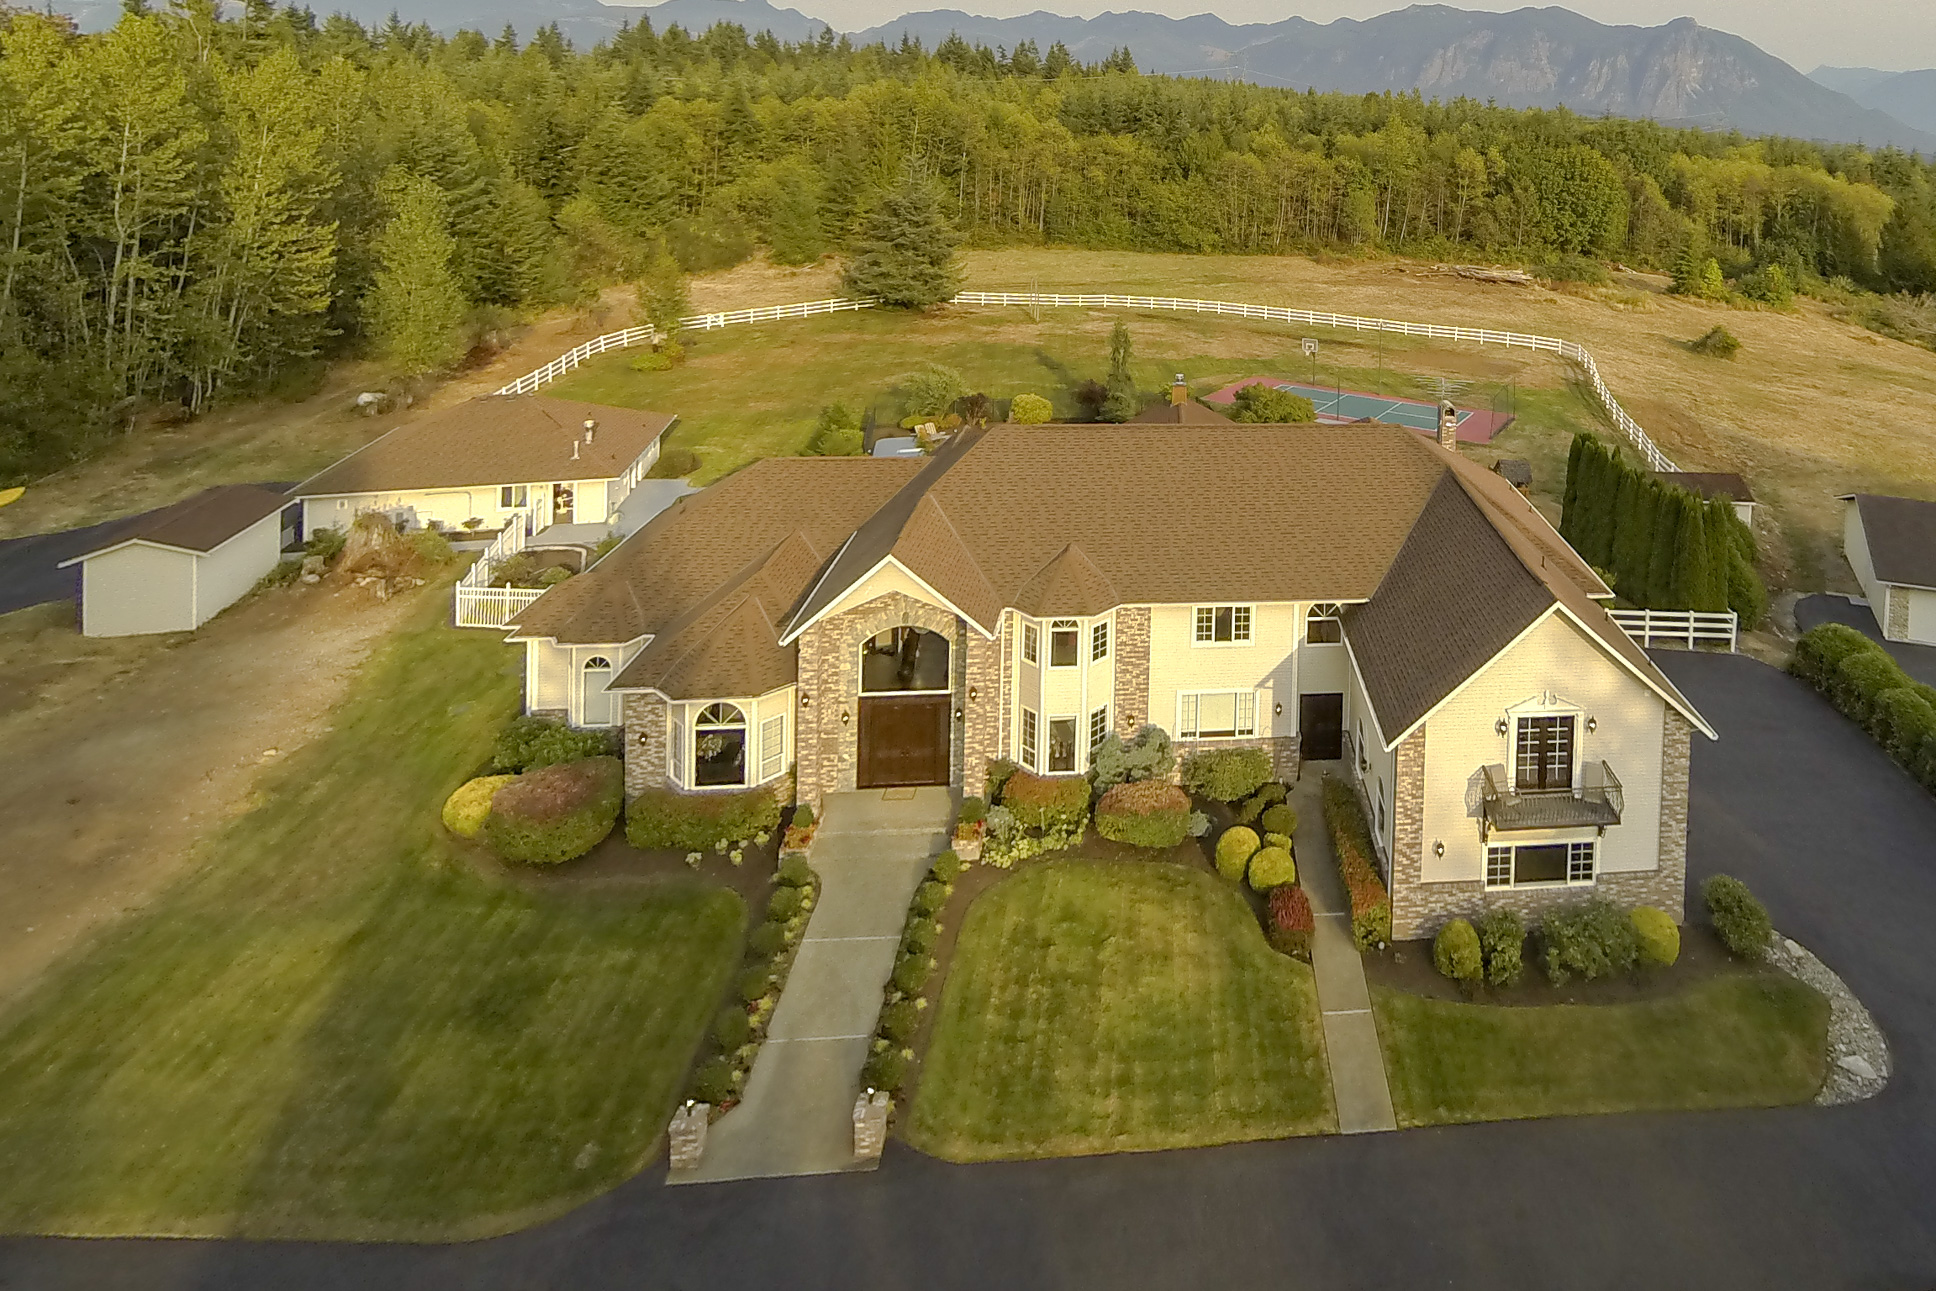 Single Family Home for Sale at 9.5 Acre Hill Top Retreat 3604 364th Ave SE Fall City, Washington 98024 United States